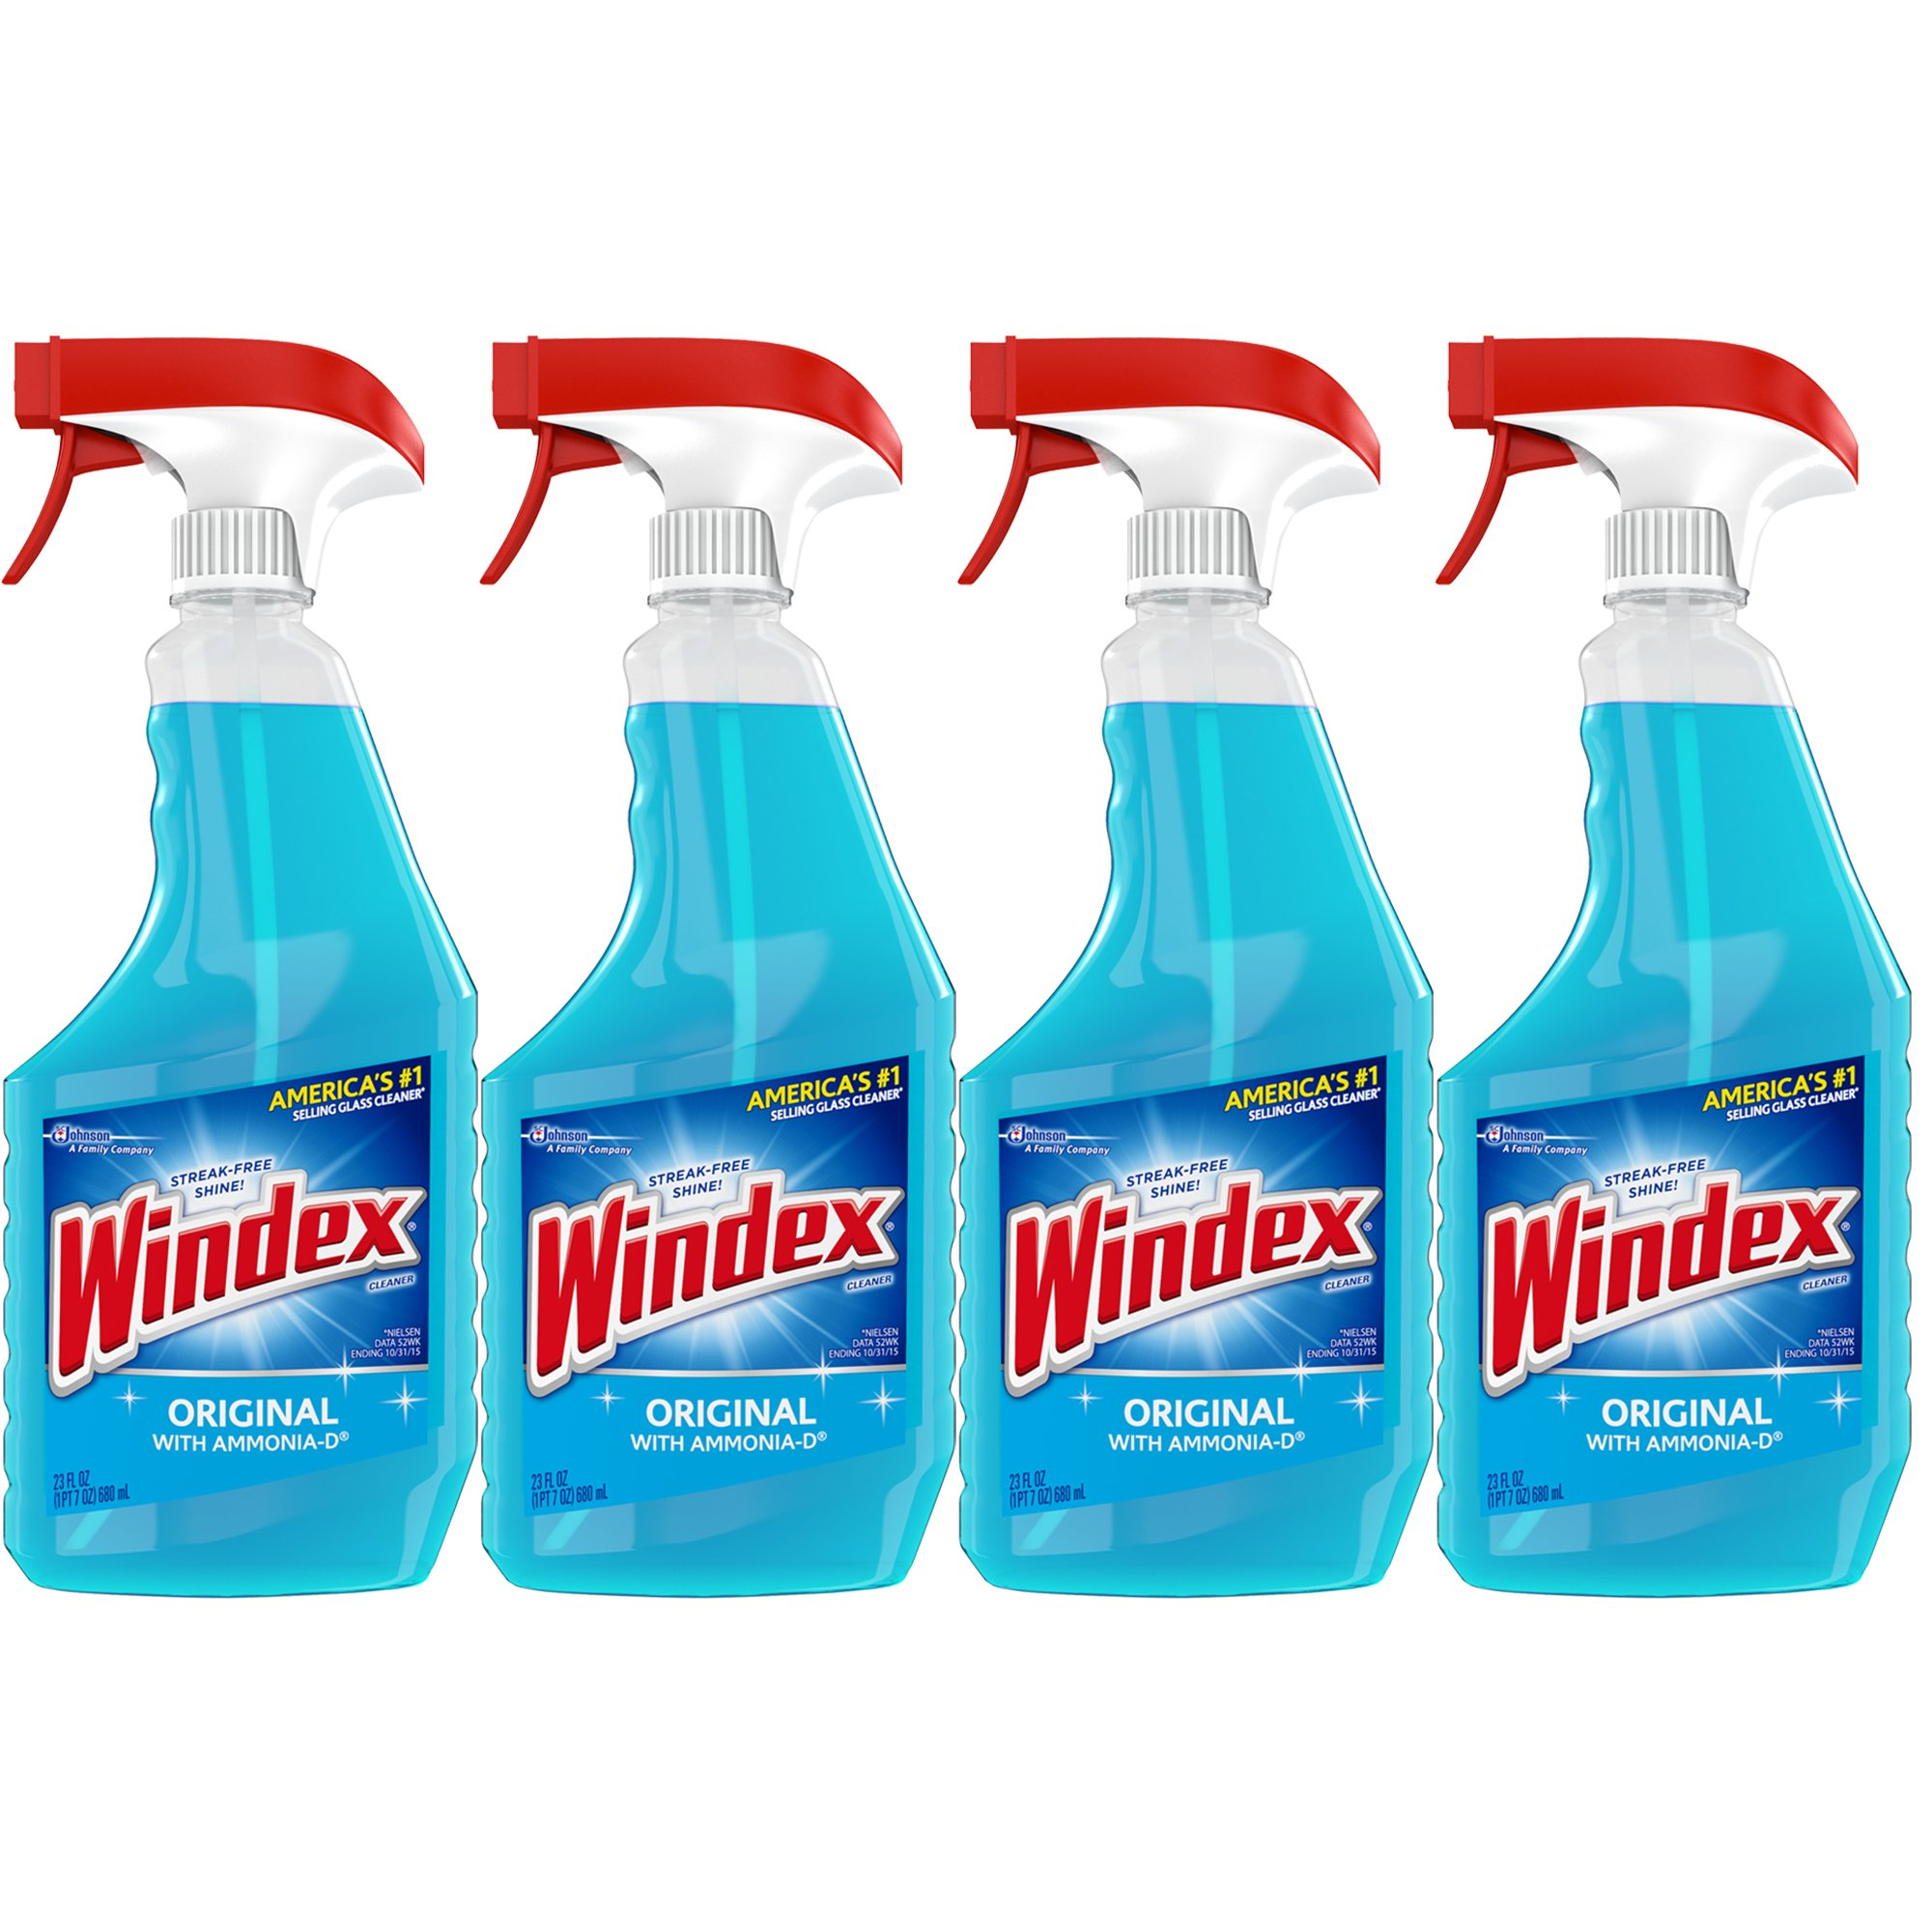 Windex Glass & Multi Surface Cleaner, 23 oz, 4-Pack